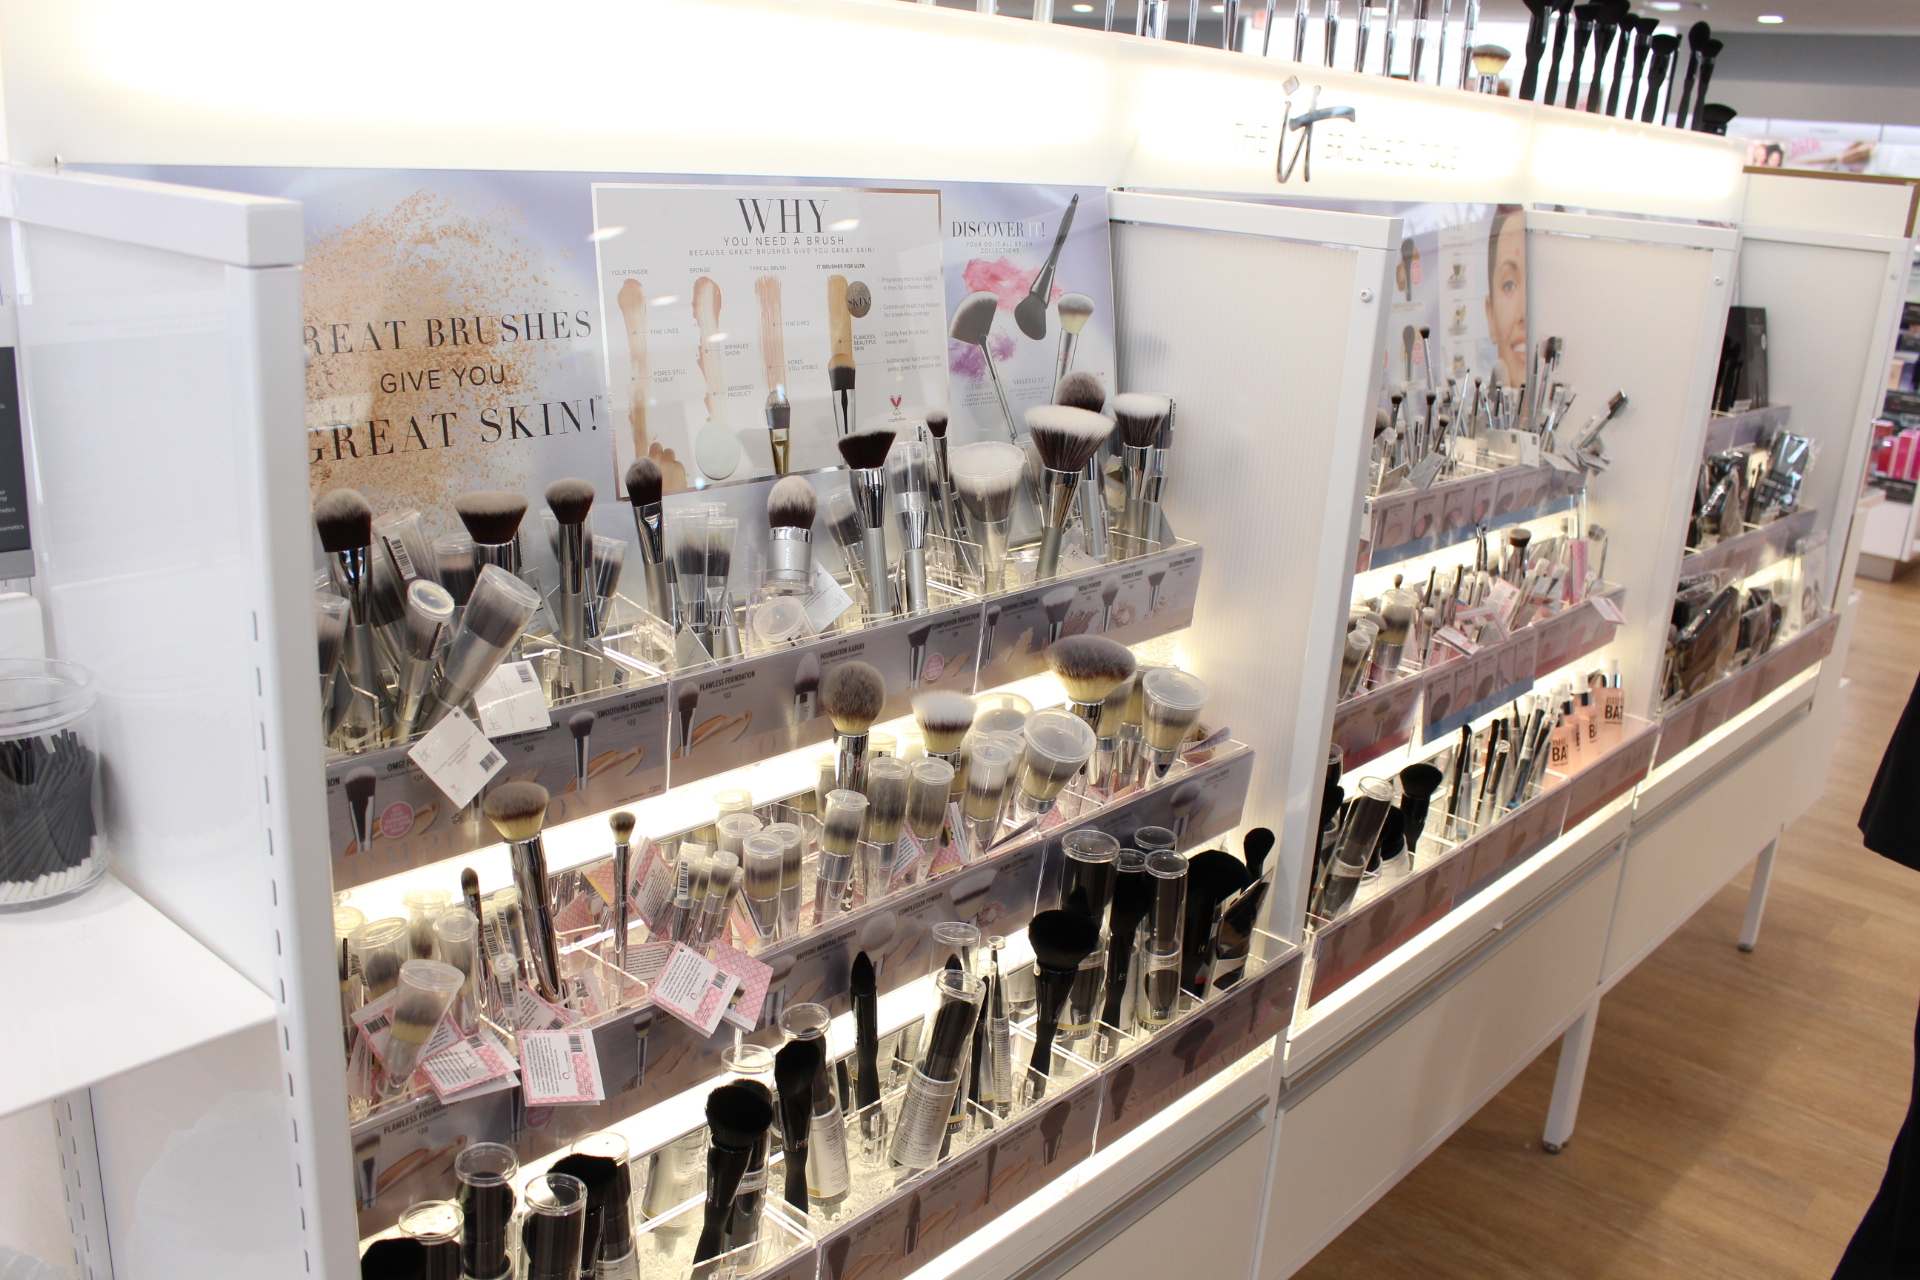 ULTA Beauty pulaski grand opening LANCOME ANASTASIA BEVERLLY HILLS IT COSMETICS BRUSHES by alejandra avila